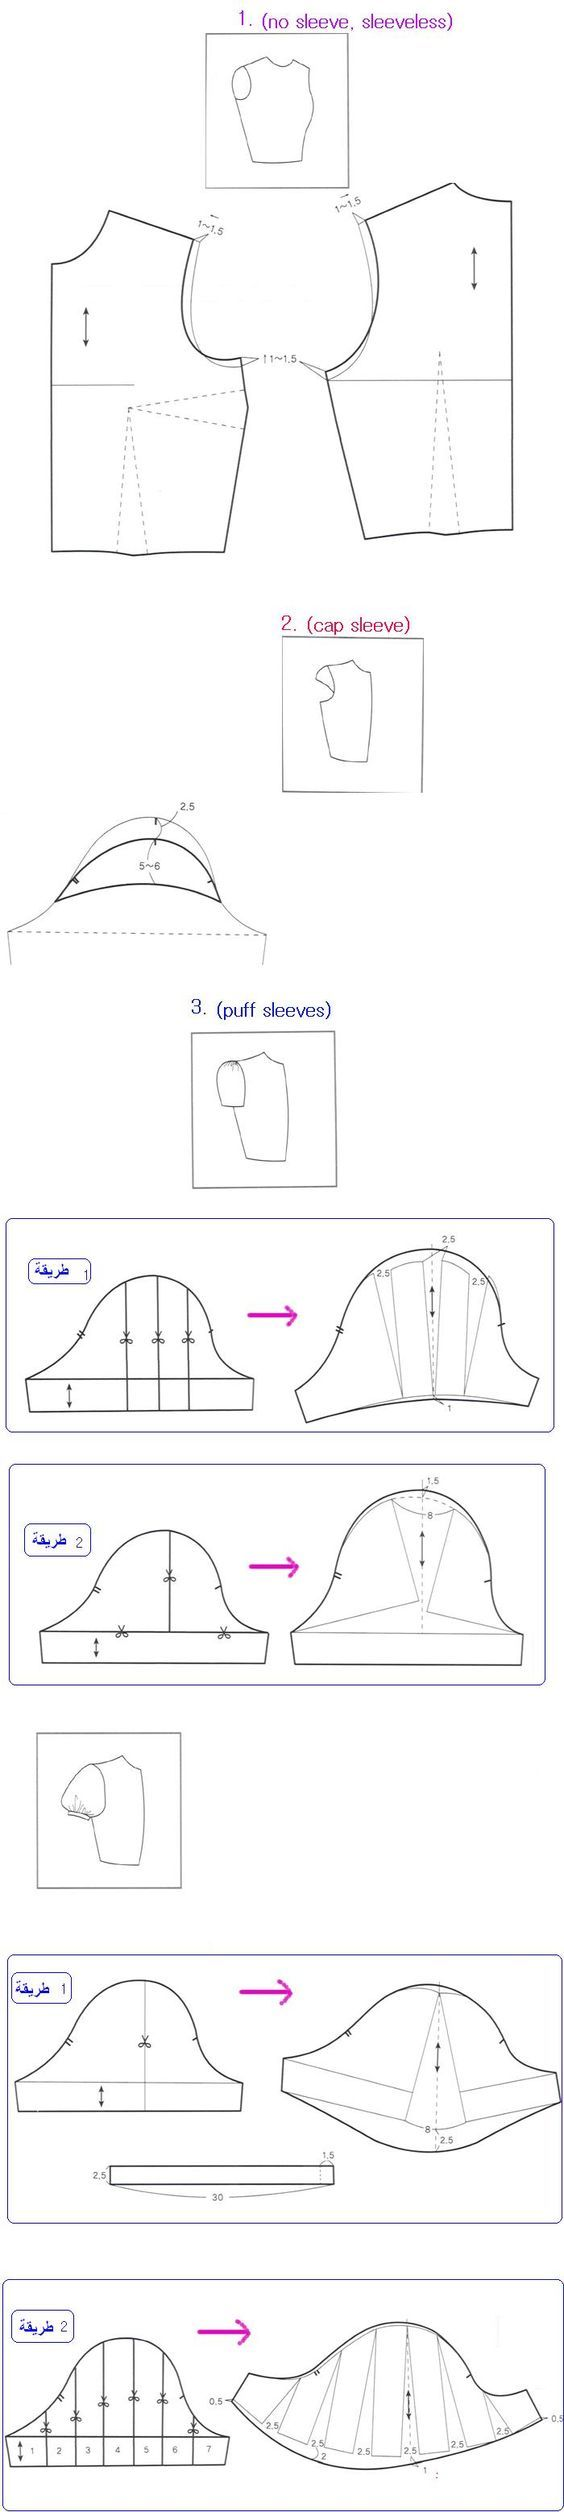 adjusting paterns for sleeves: